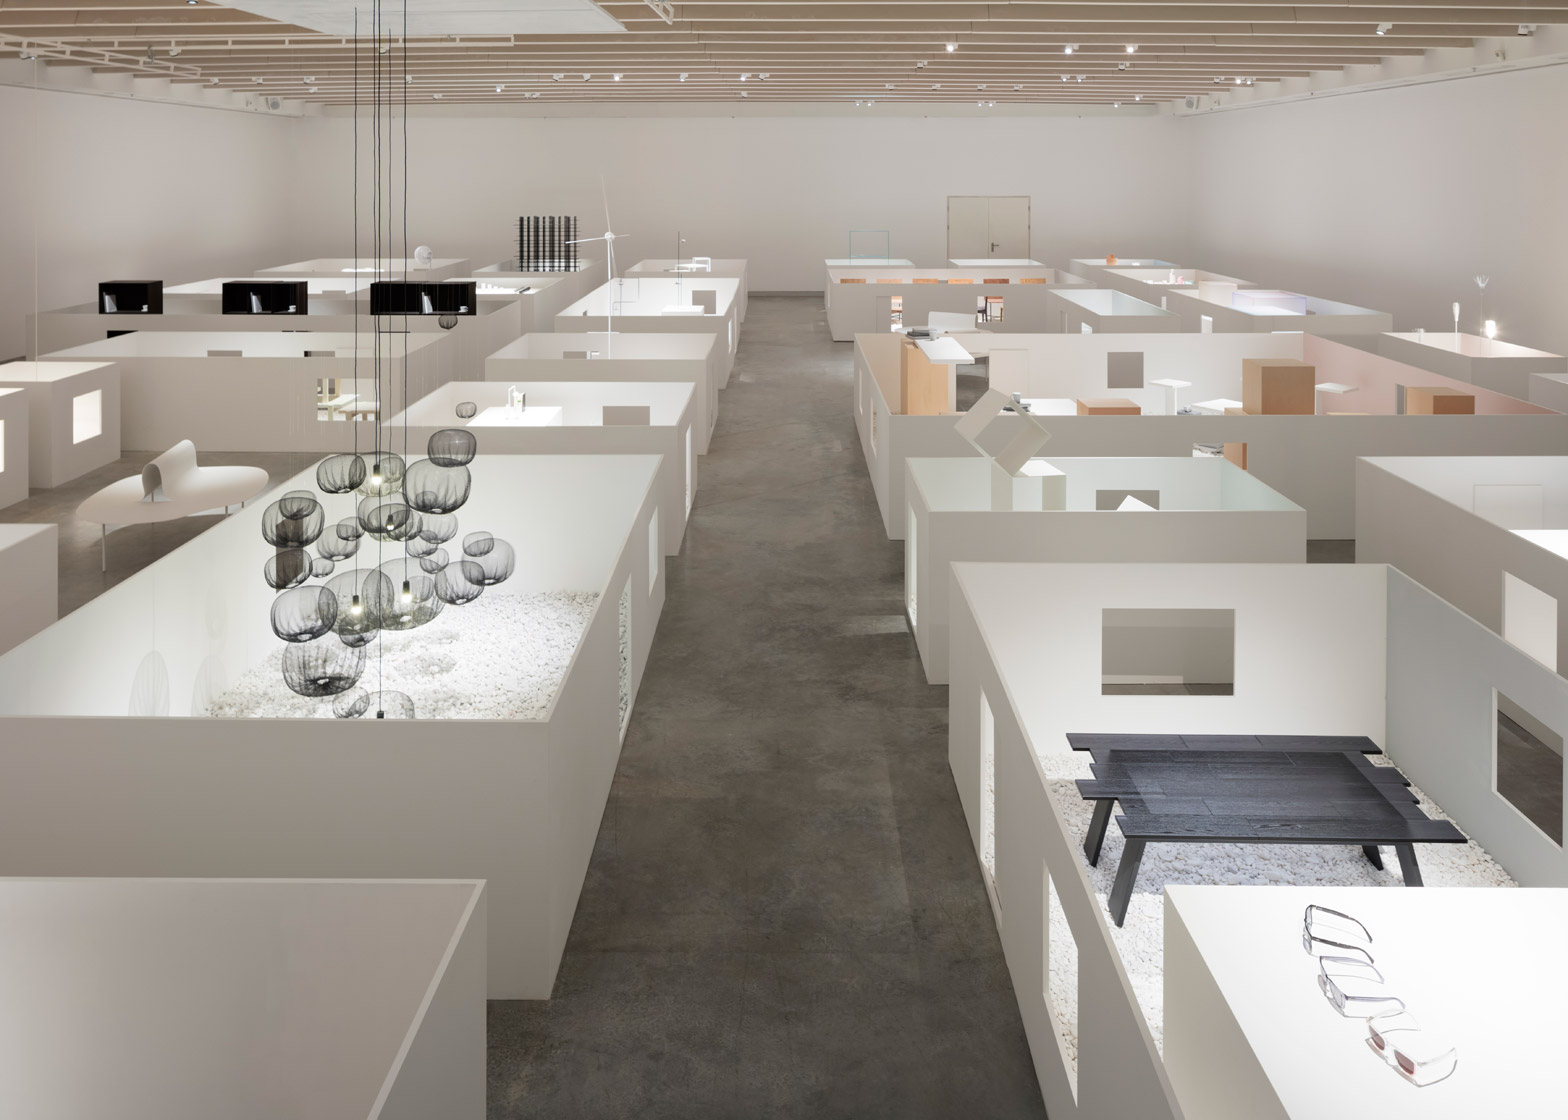 The Space Inbetween Nendo retrospective exhibition at the Museum Holon in Israel. Photograph by Takumi Ota